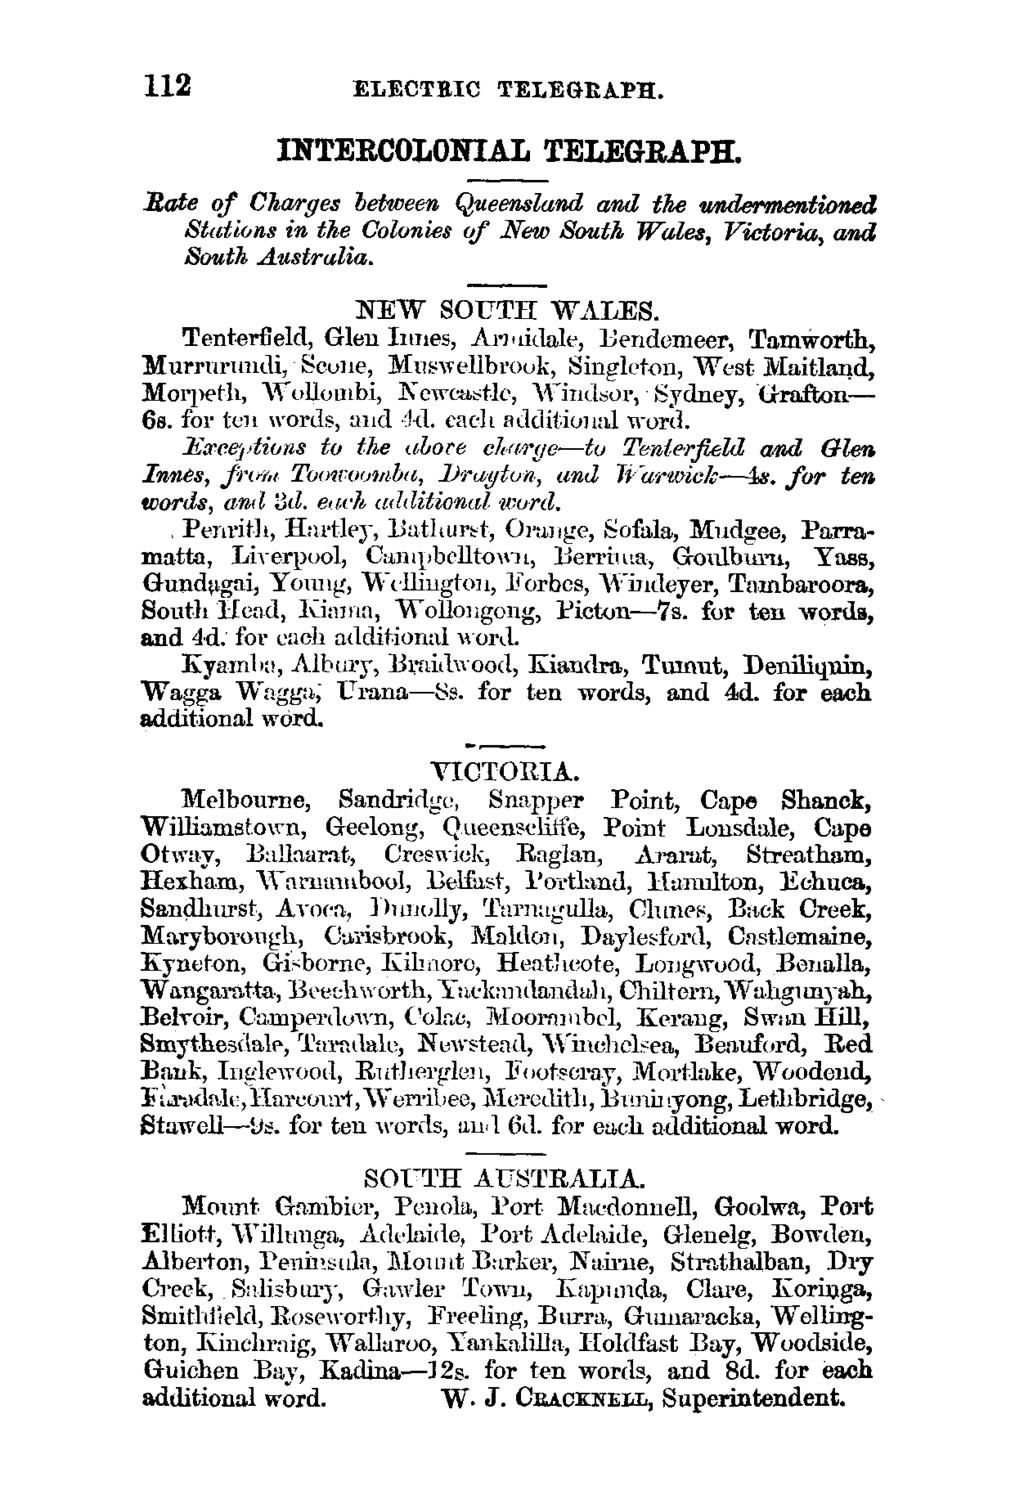 112 ELECTRIC TELEGEAPR. INTERCOLONIAL TELEGRAPH. -Rate of Charges between Queensland and the undermentioned Stations in the Colonies of New South Wales, Victoria, and South Australia. NEW SOUTH WALES.